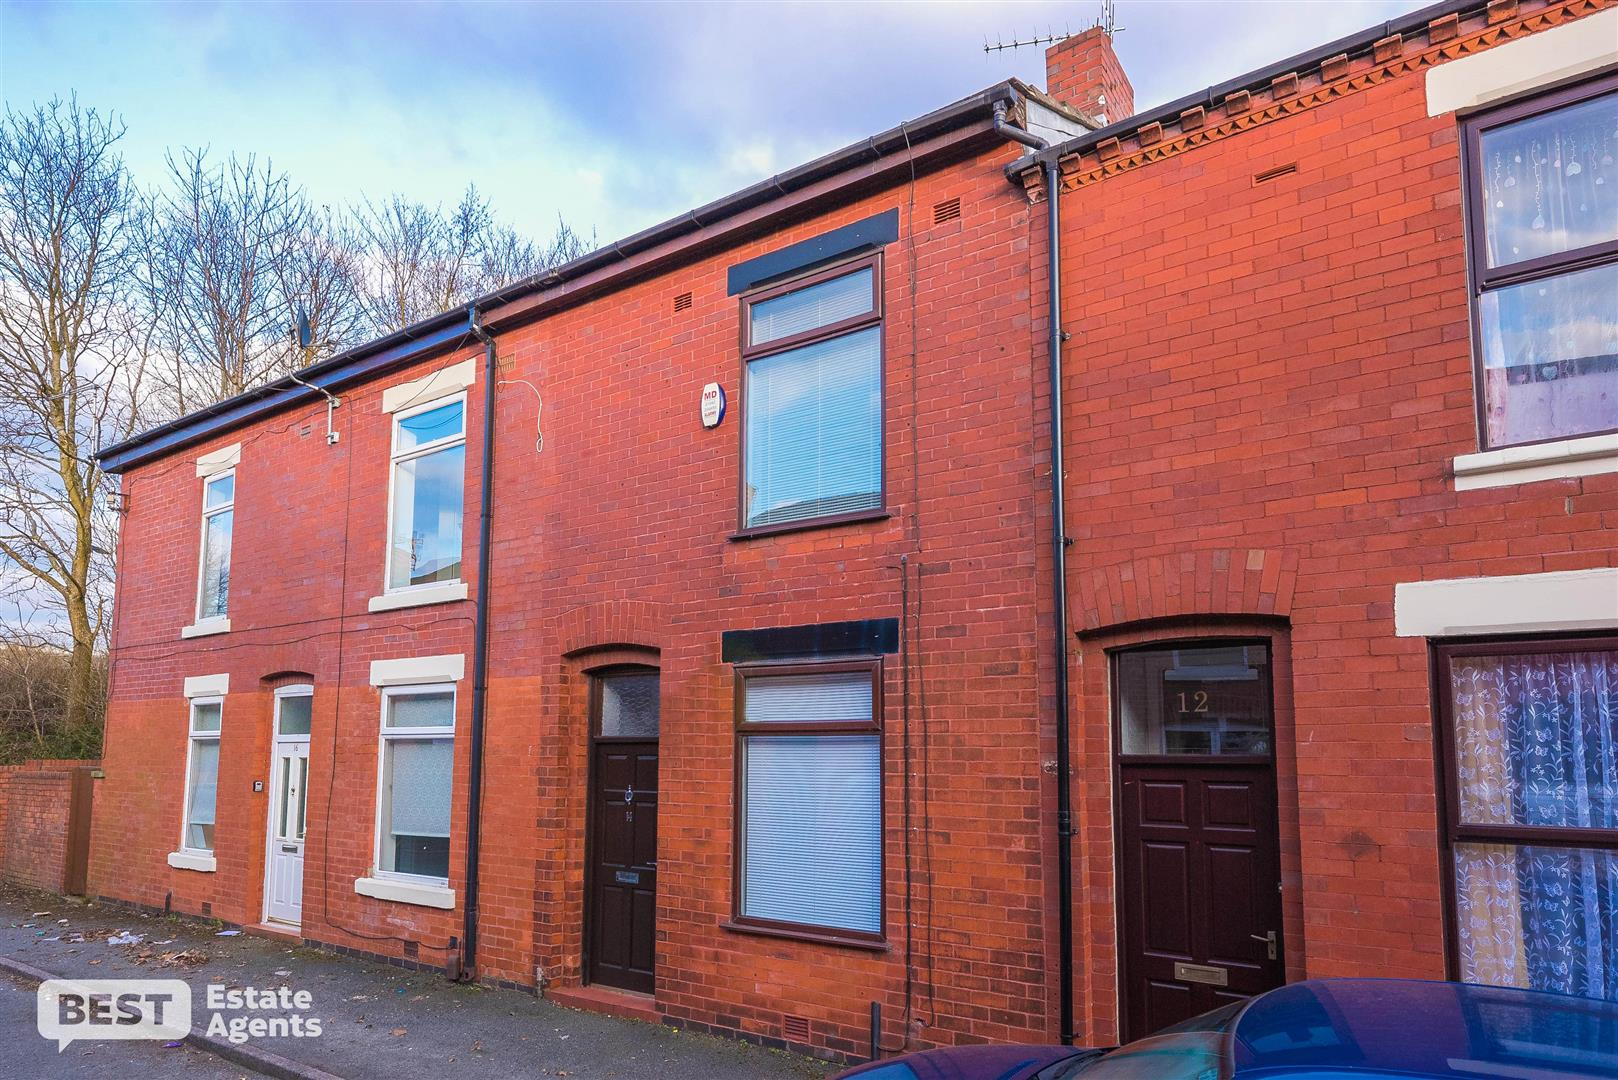 Kearsley Street, Leigh, Greater Manchester BEST Estate Agents